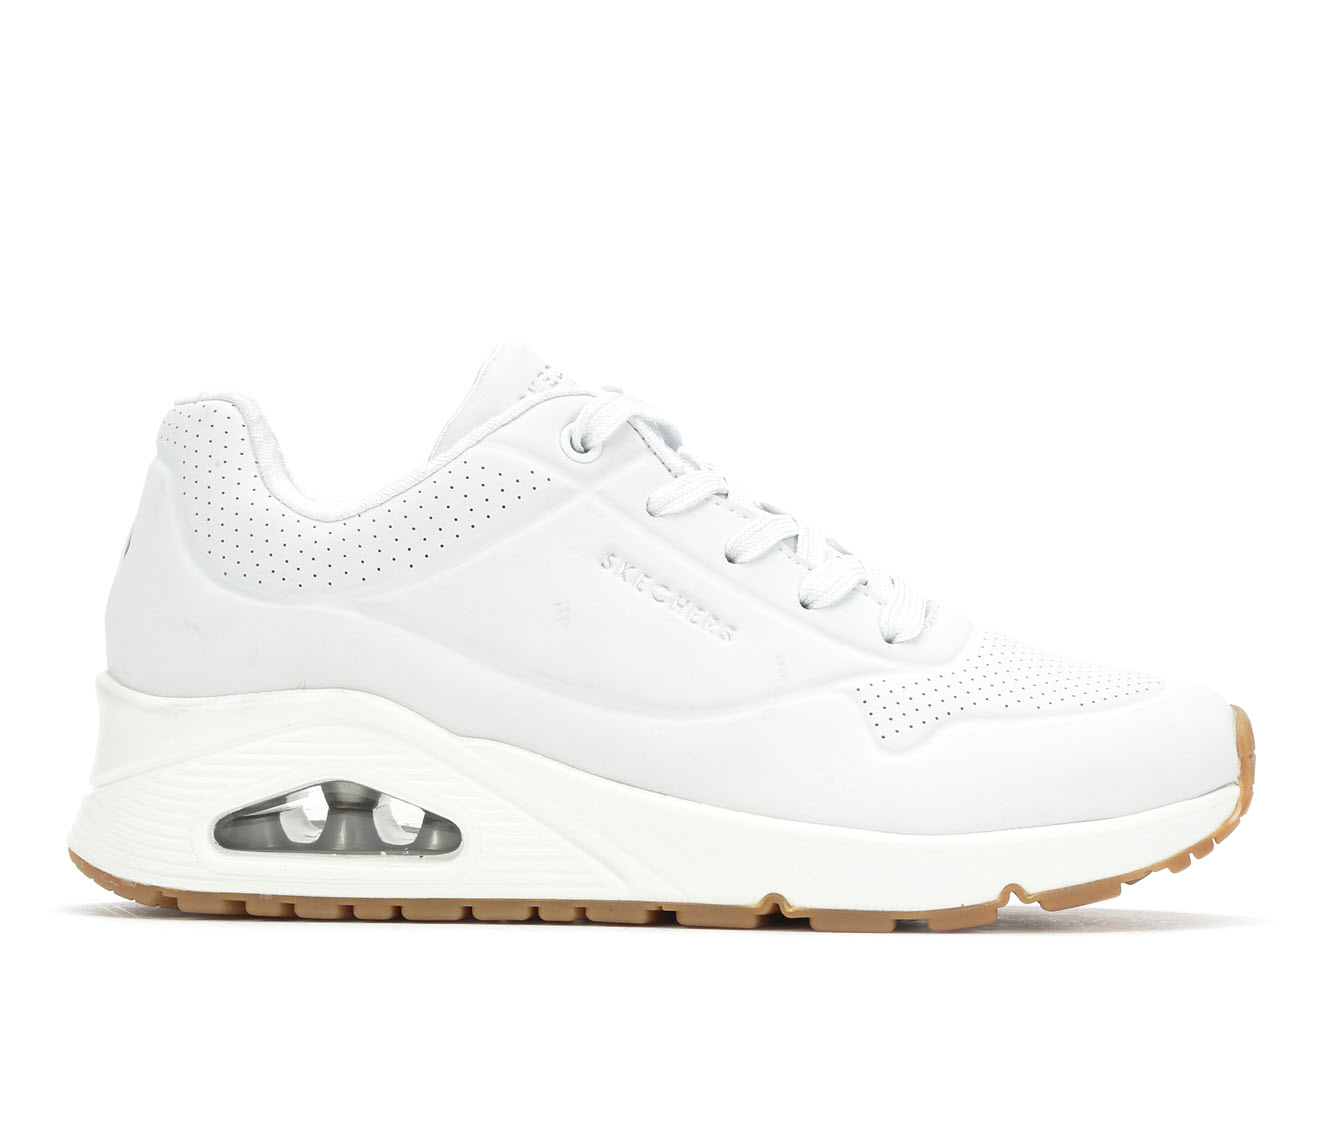 Skechers Street Stand On Air 73690 Women's Athletic Shoe (White)